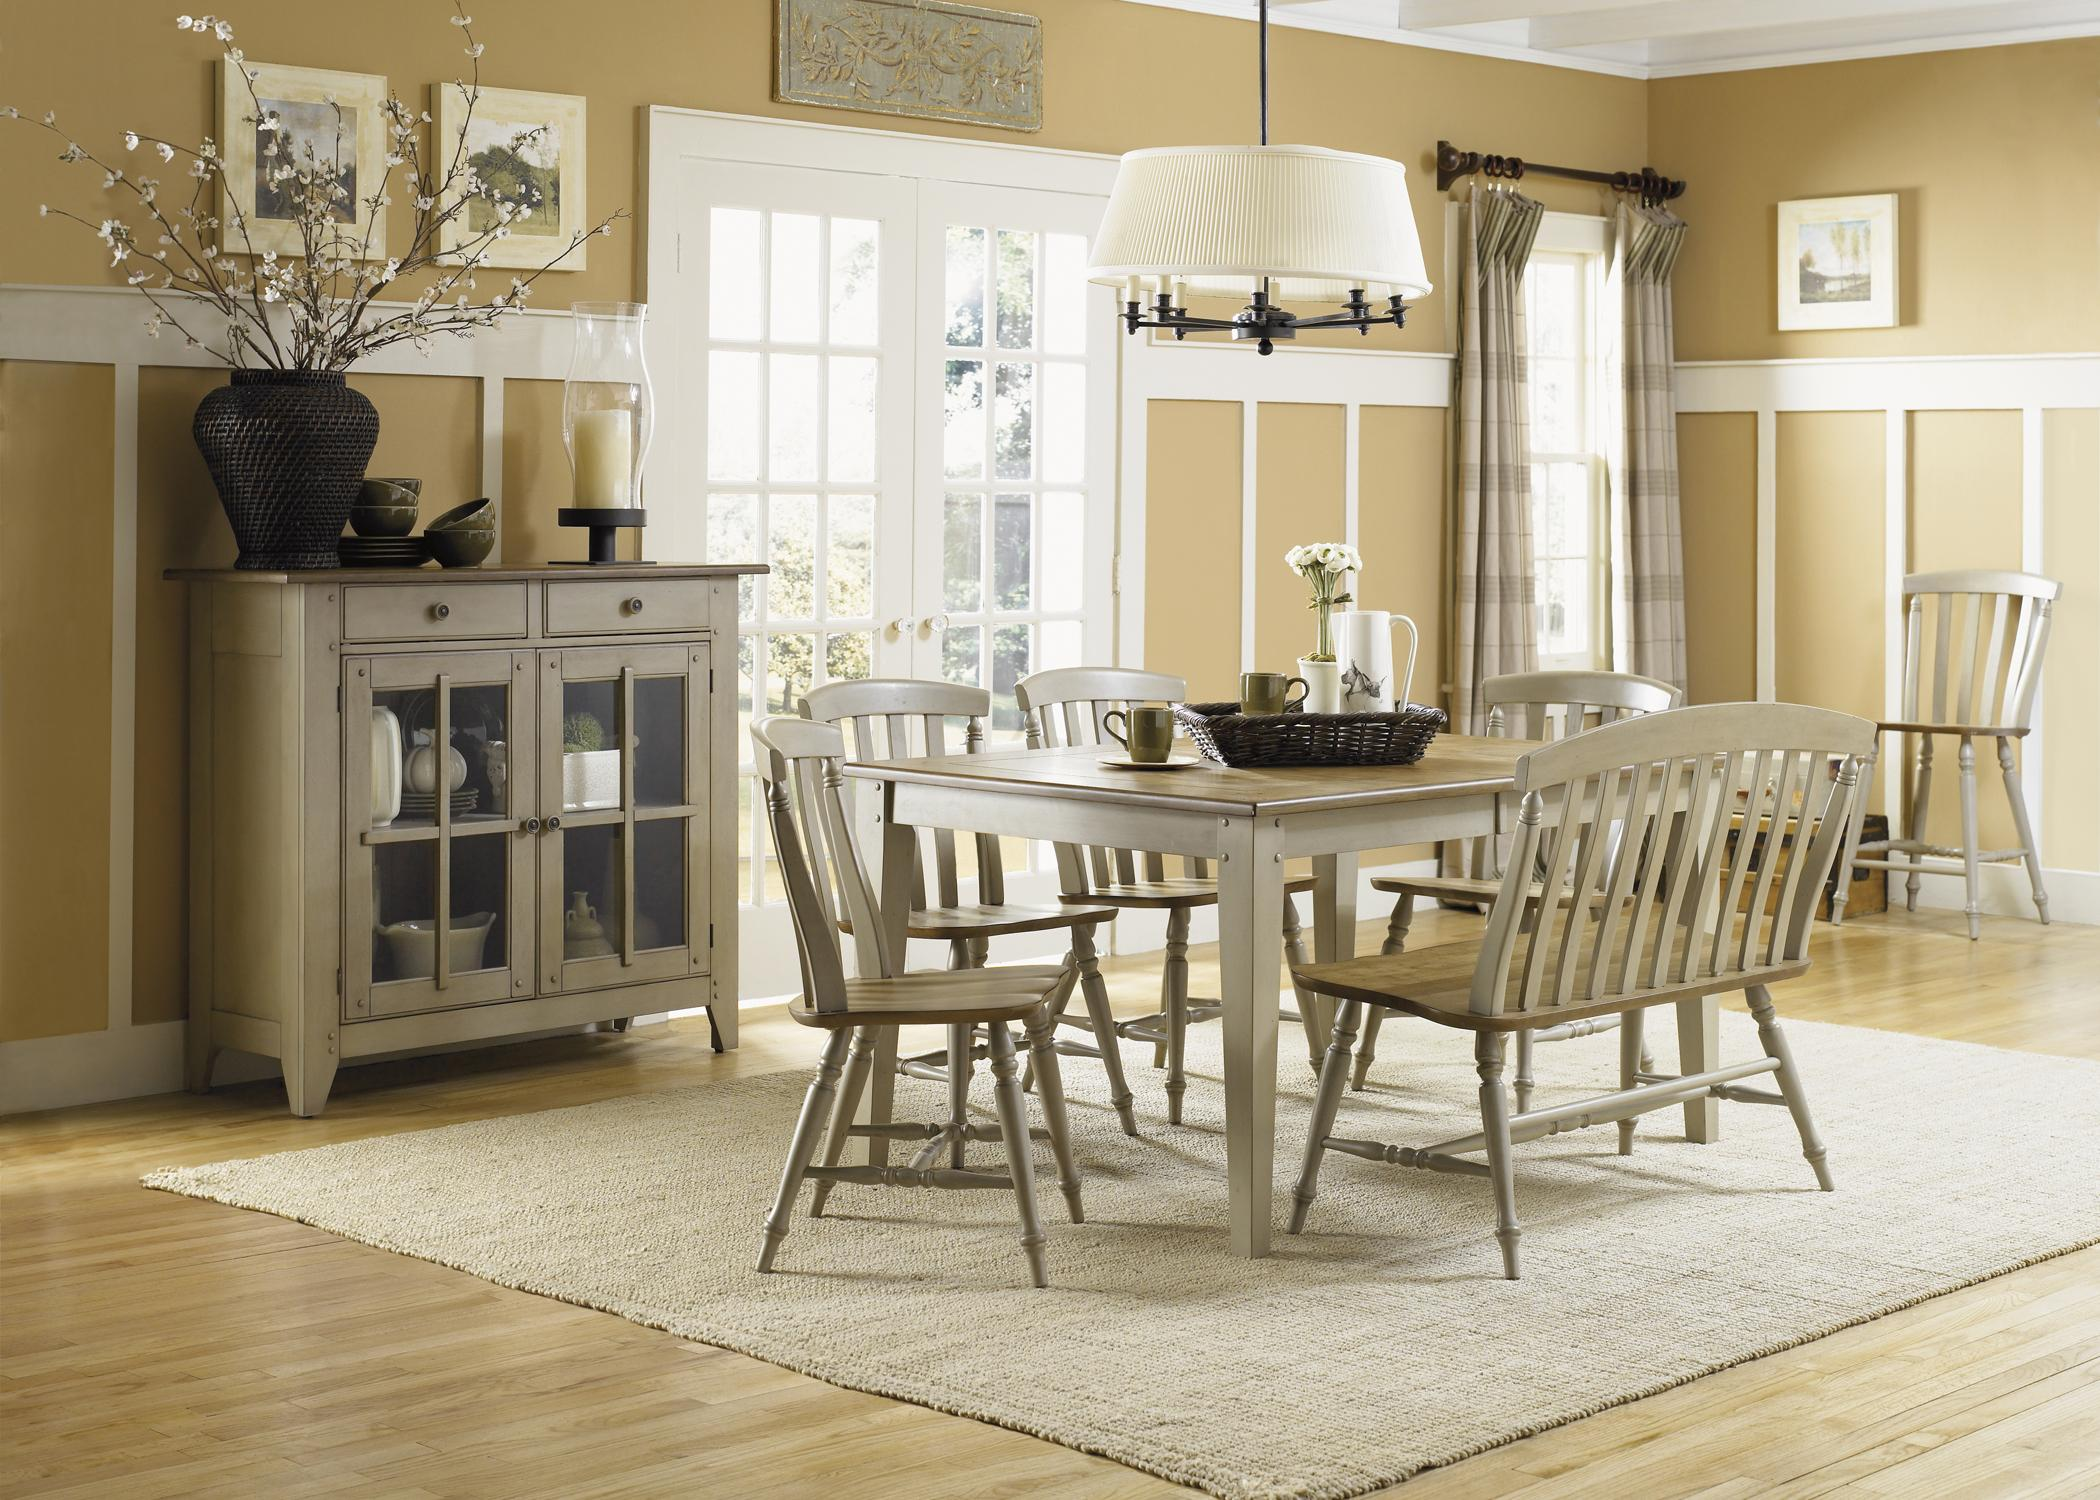 Liberty Furniture Al Fresco Dining Room Group - Item Number: 541 Dining Room Group 1